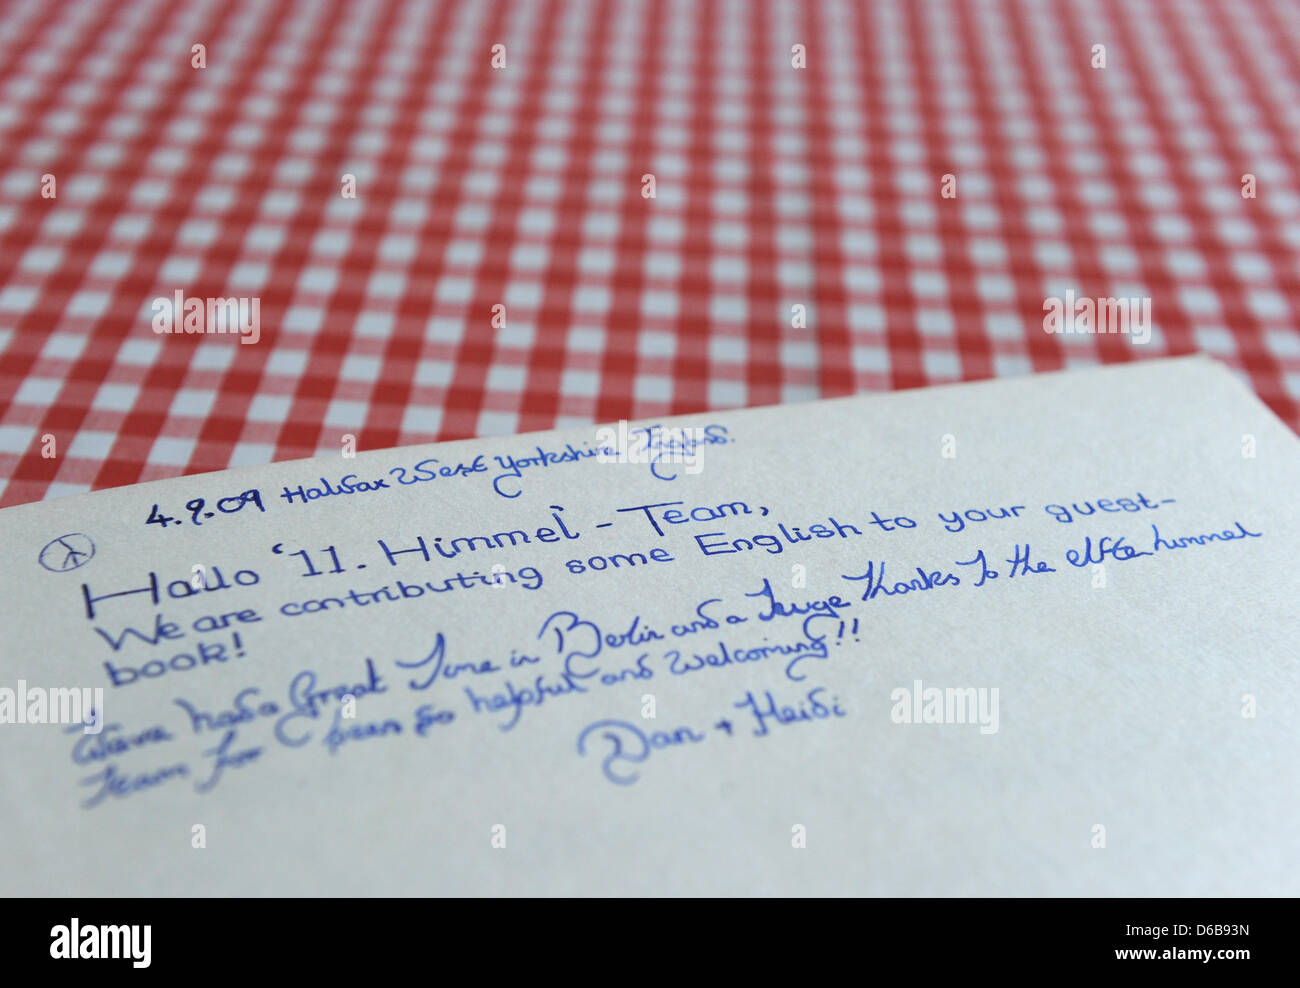 A Passage Written By Couple From Yorkshire England Into The Guest Book Of Pension 11Heaven Is Visible On Table At Culture High Rise In Marzahn